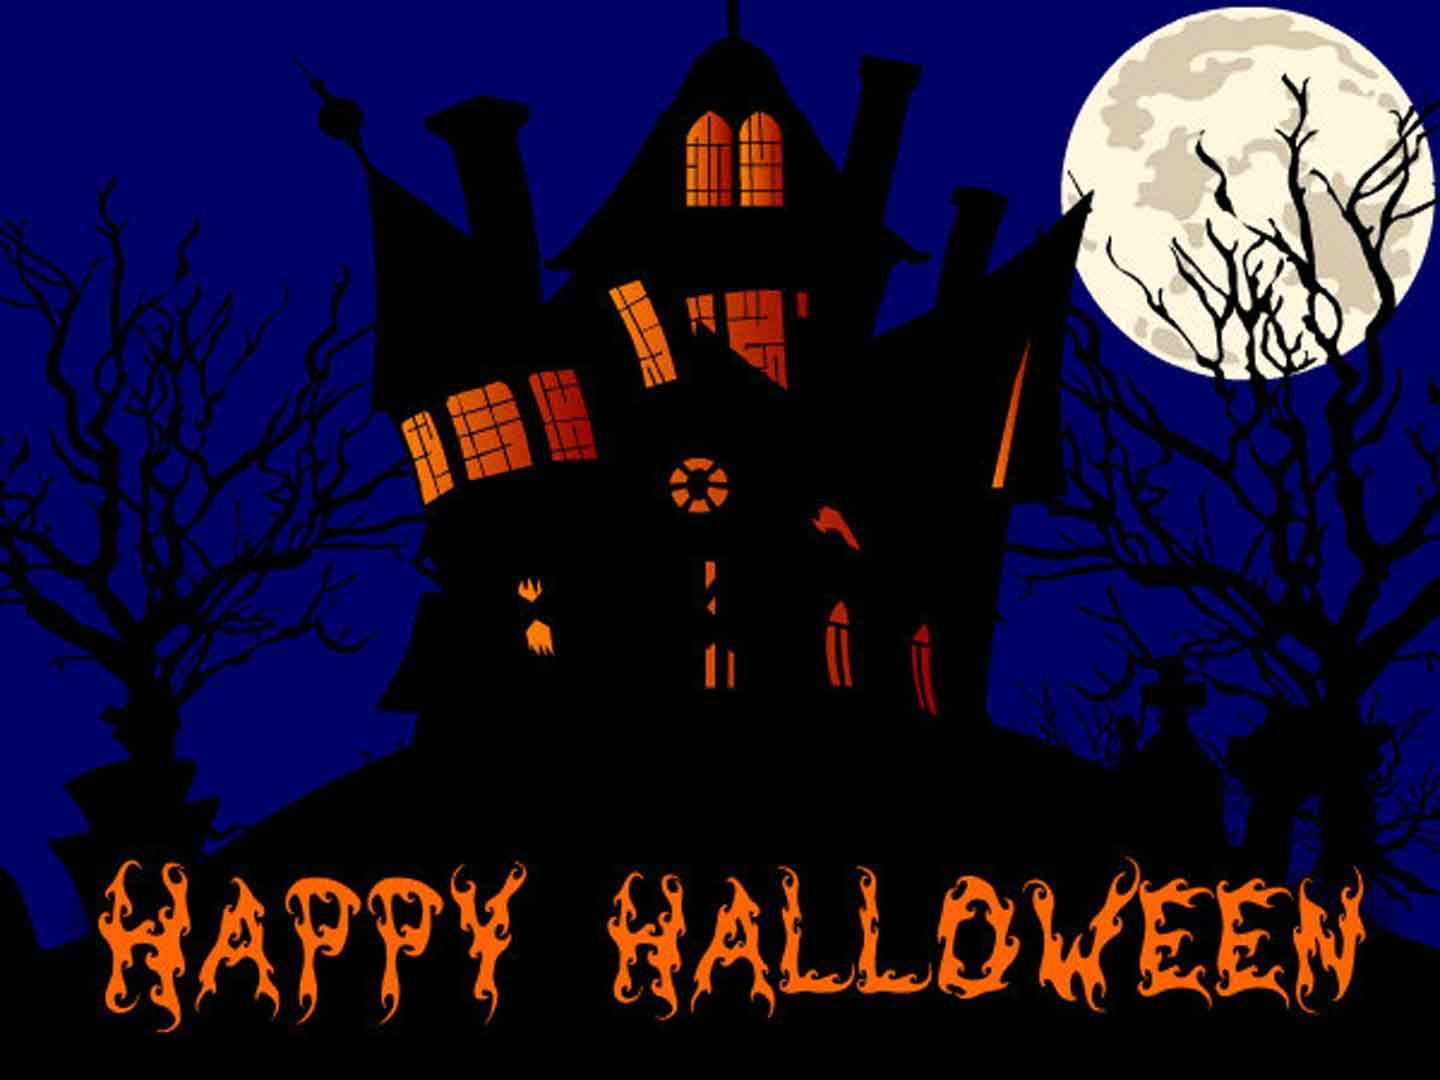 All Wallpapers: Happy Halloween hd Wallpapers 2013